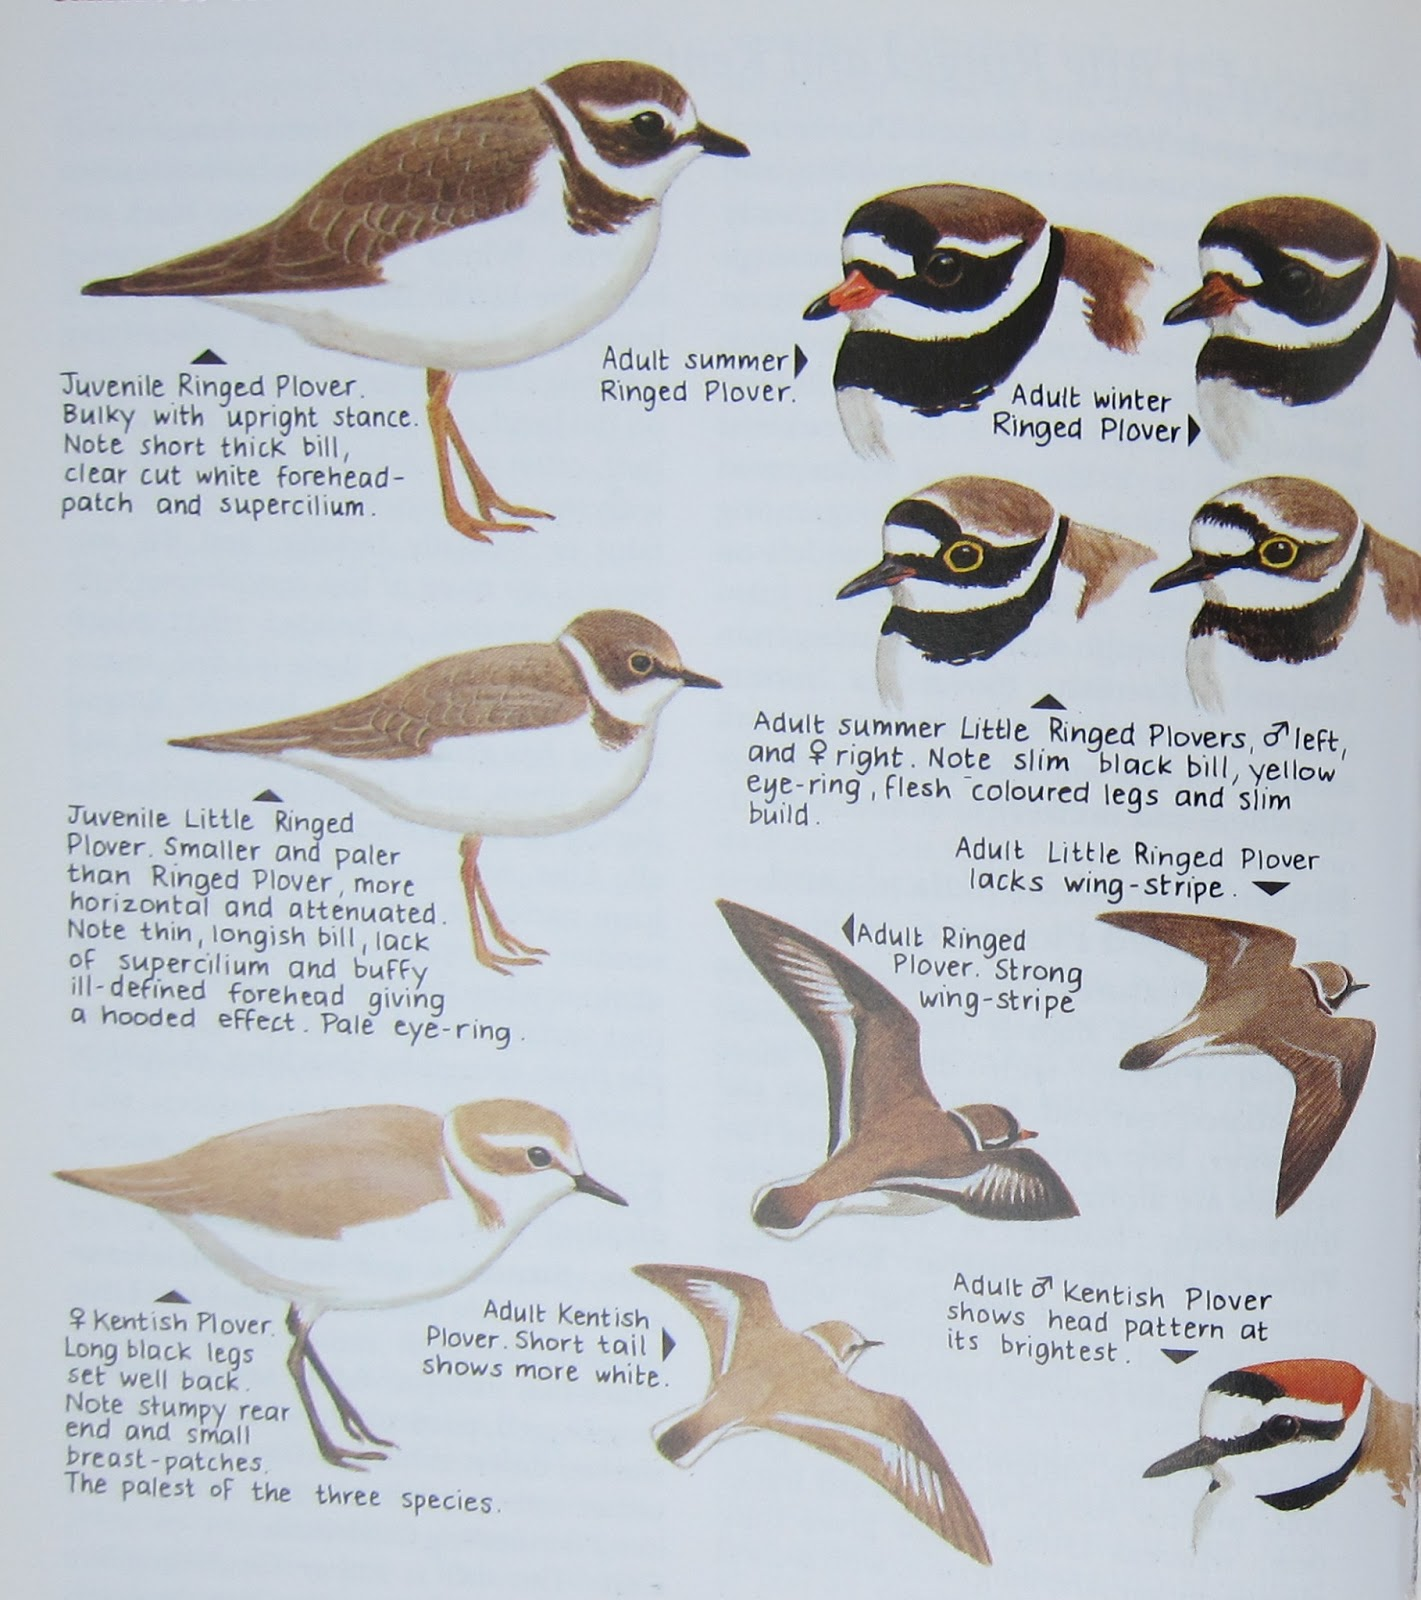 bird identification guide images reverse search